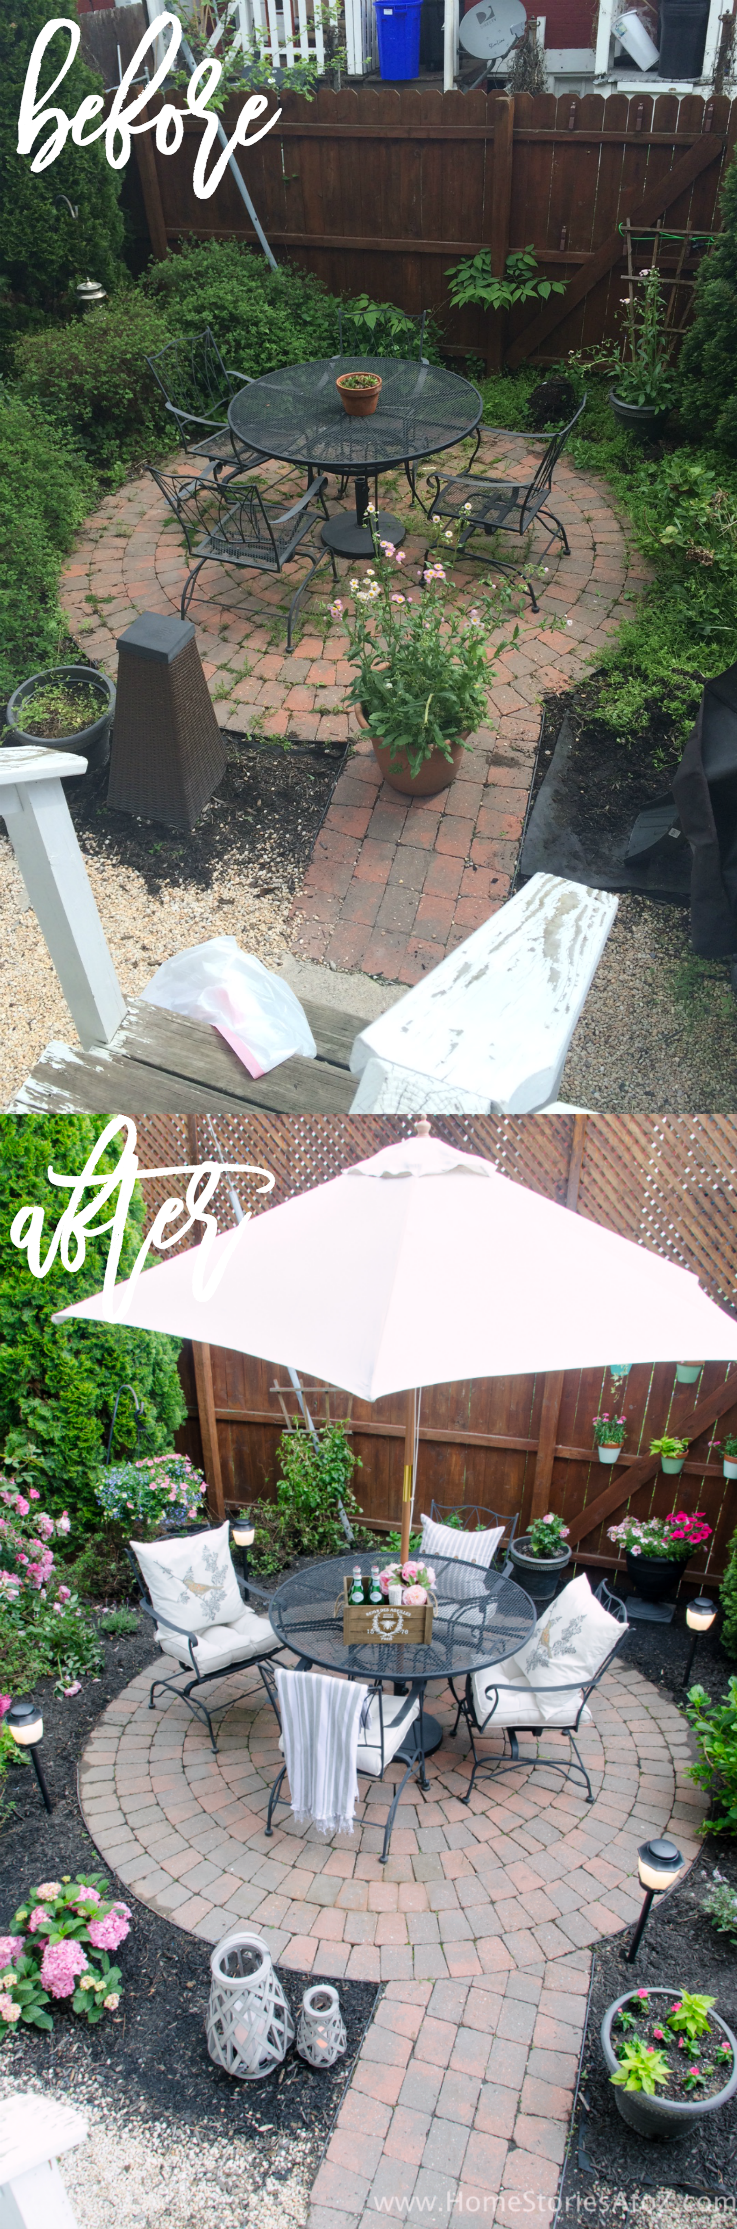 urban backyard makeover with outdoor mosquito repellent lighting